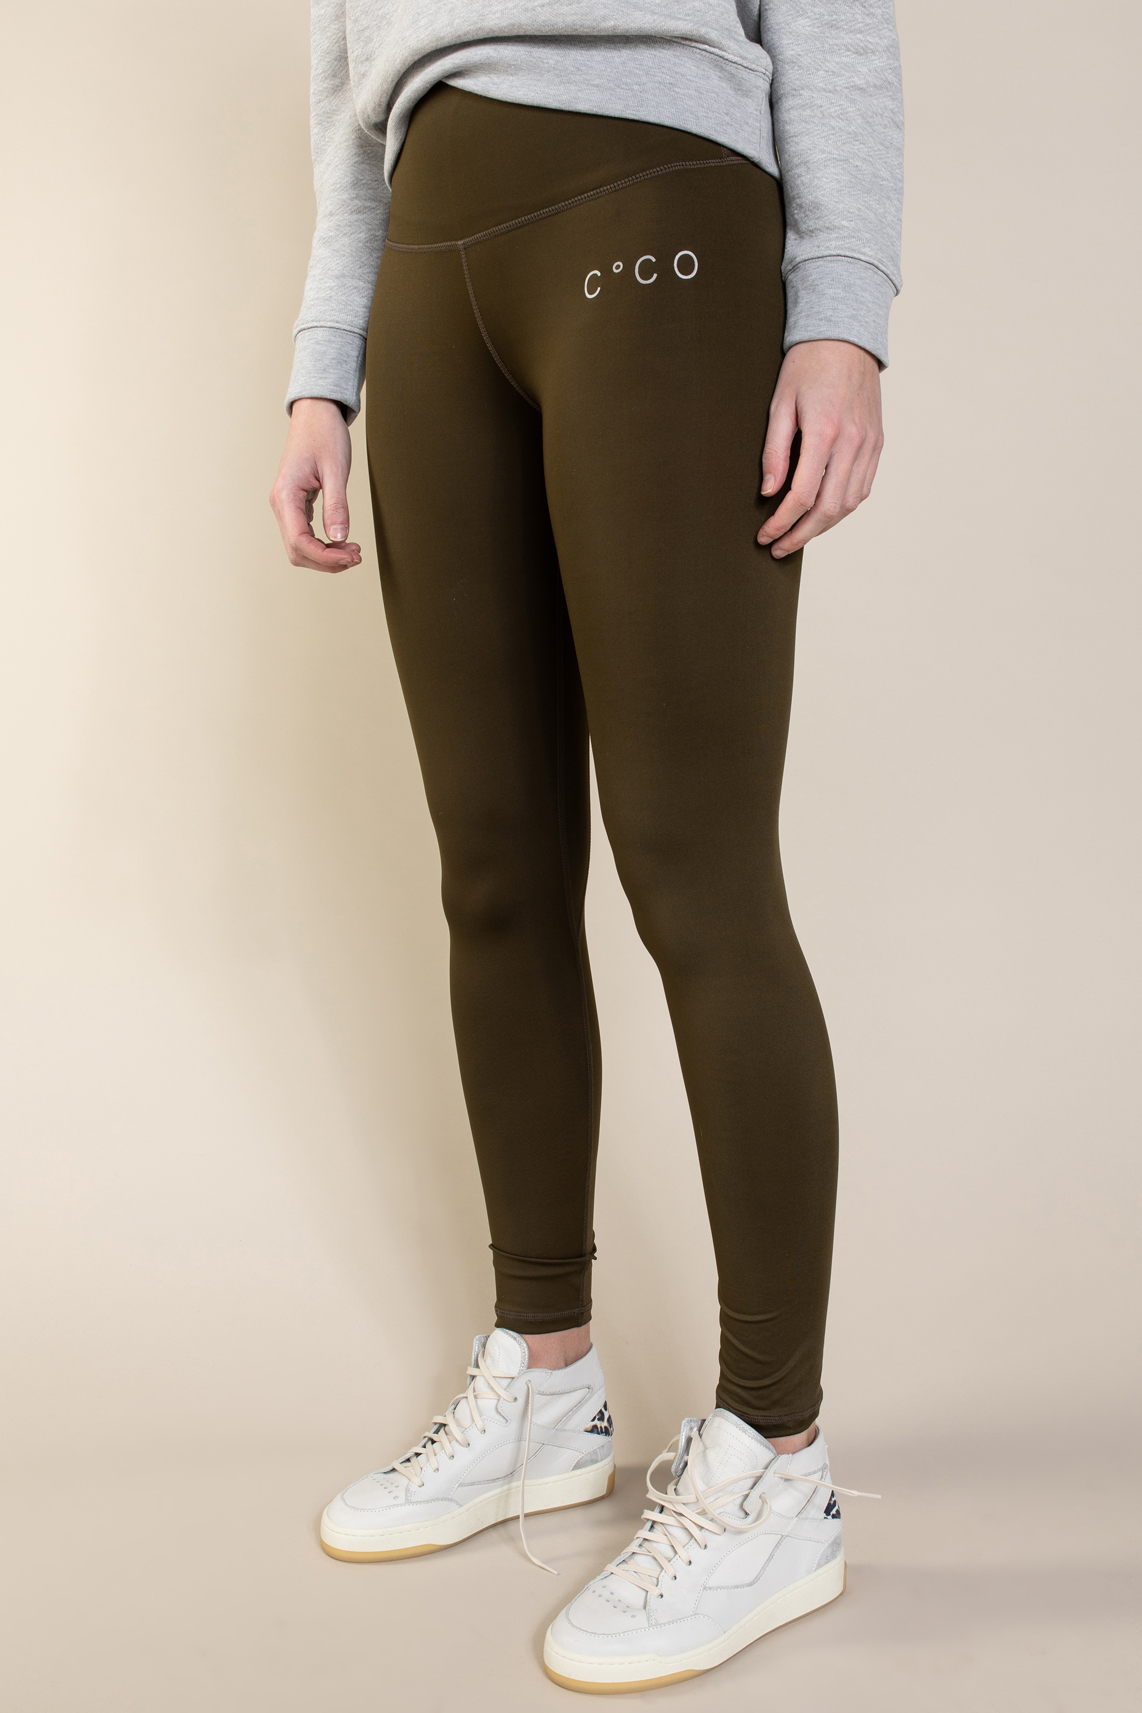 Co Couture Dames Livia legging Groen